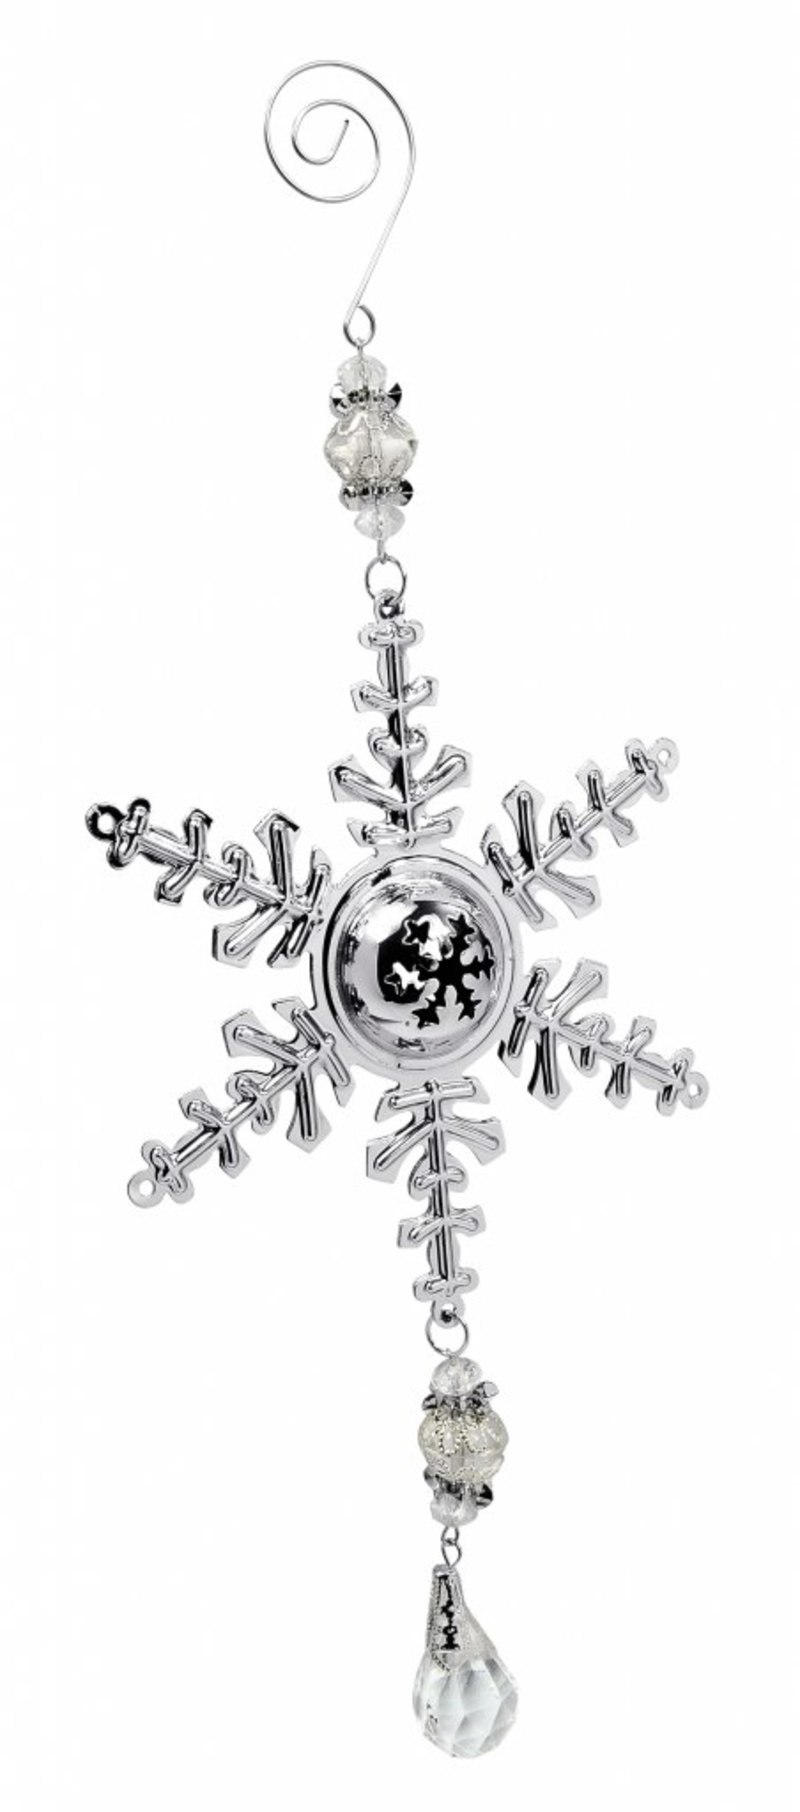 DECORATION SNOWFLAKE